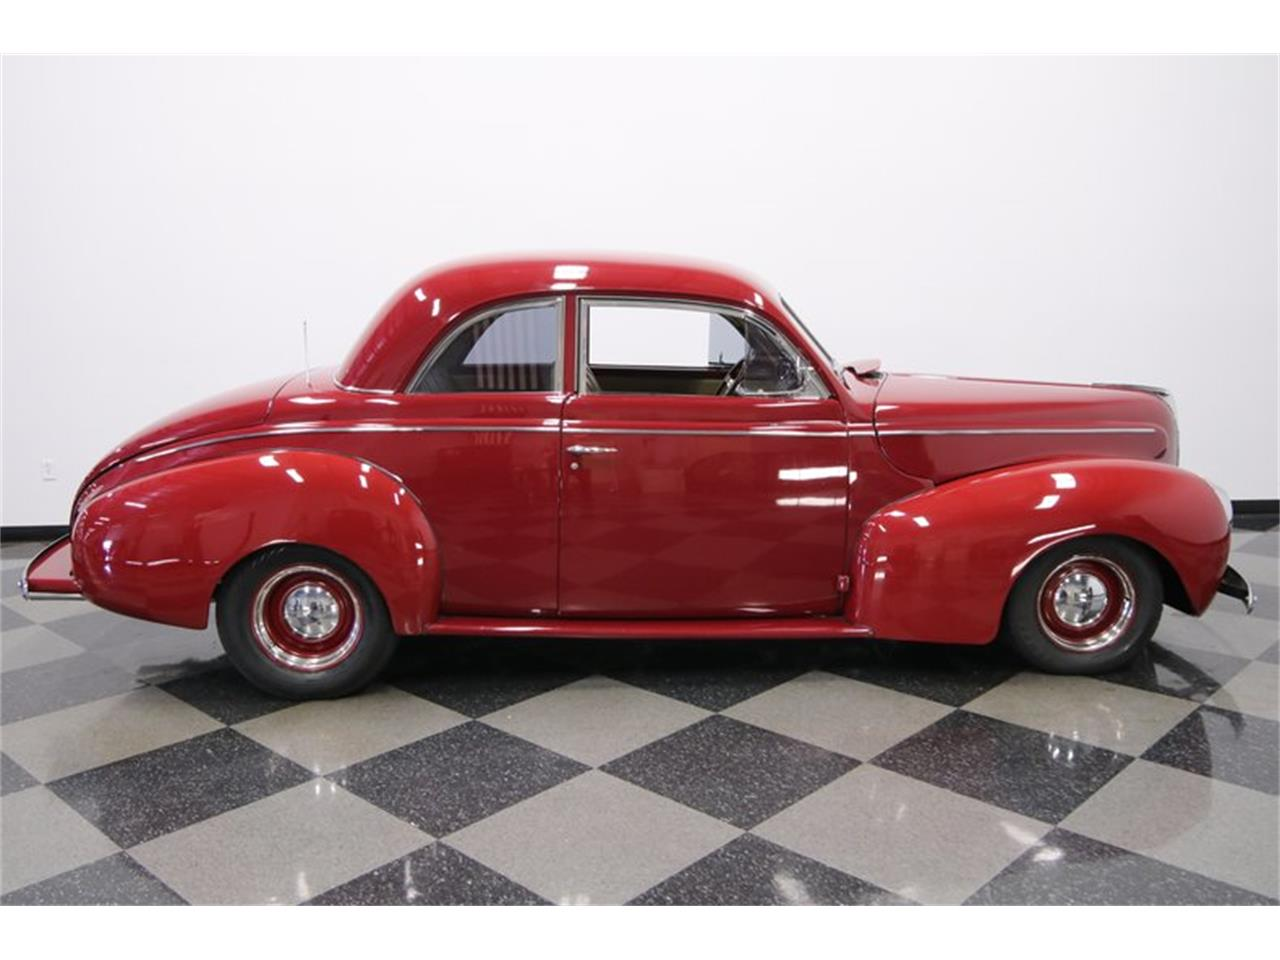 1940 Mercury Coupe for sale in Lutz, FL – photo 32